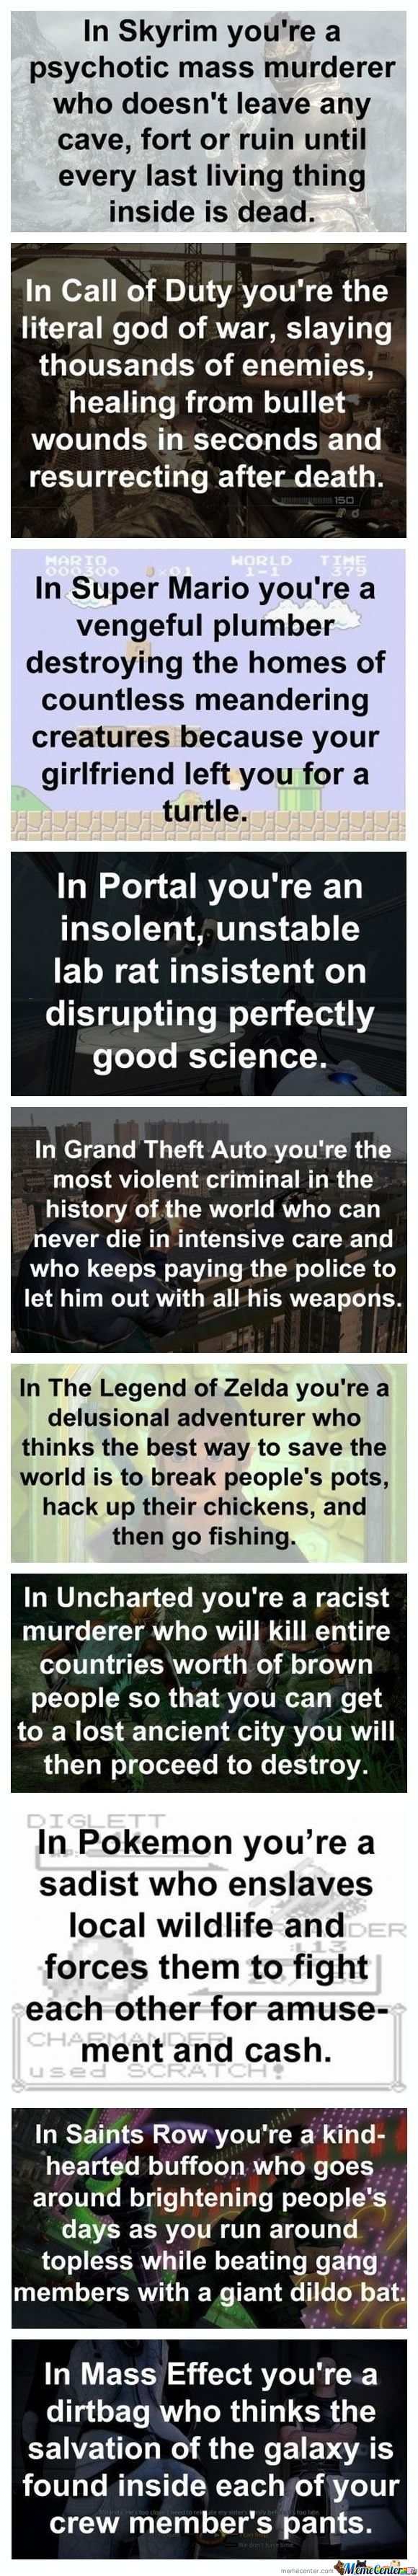 Another Perspective About Video Games..